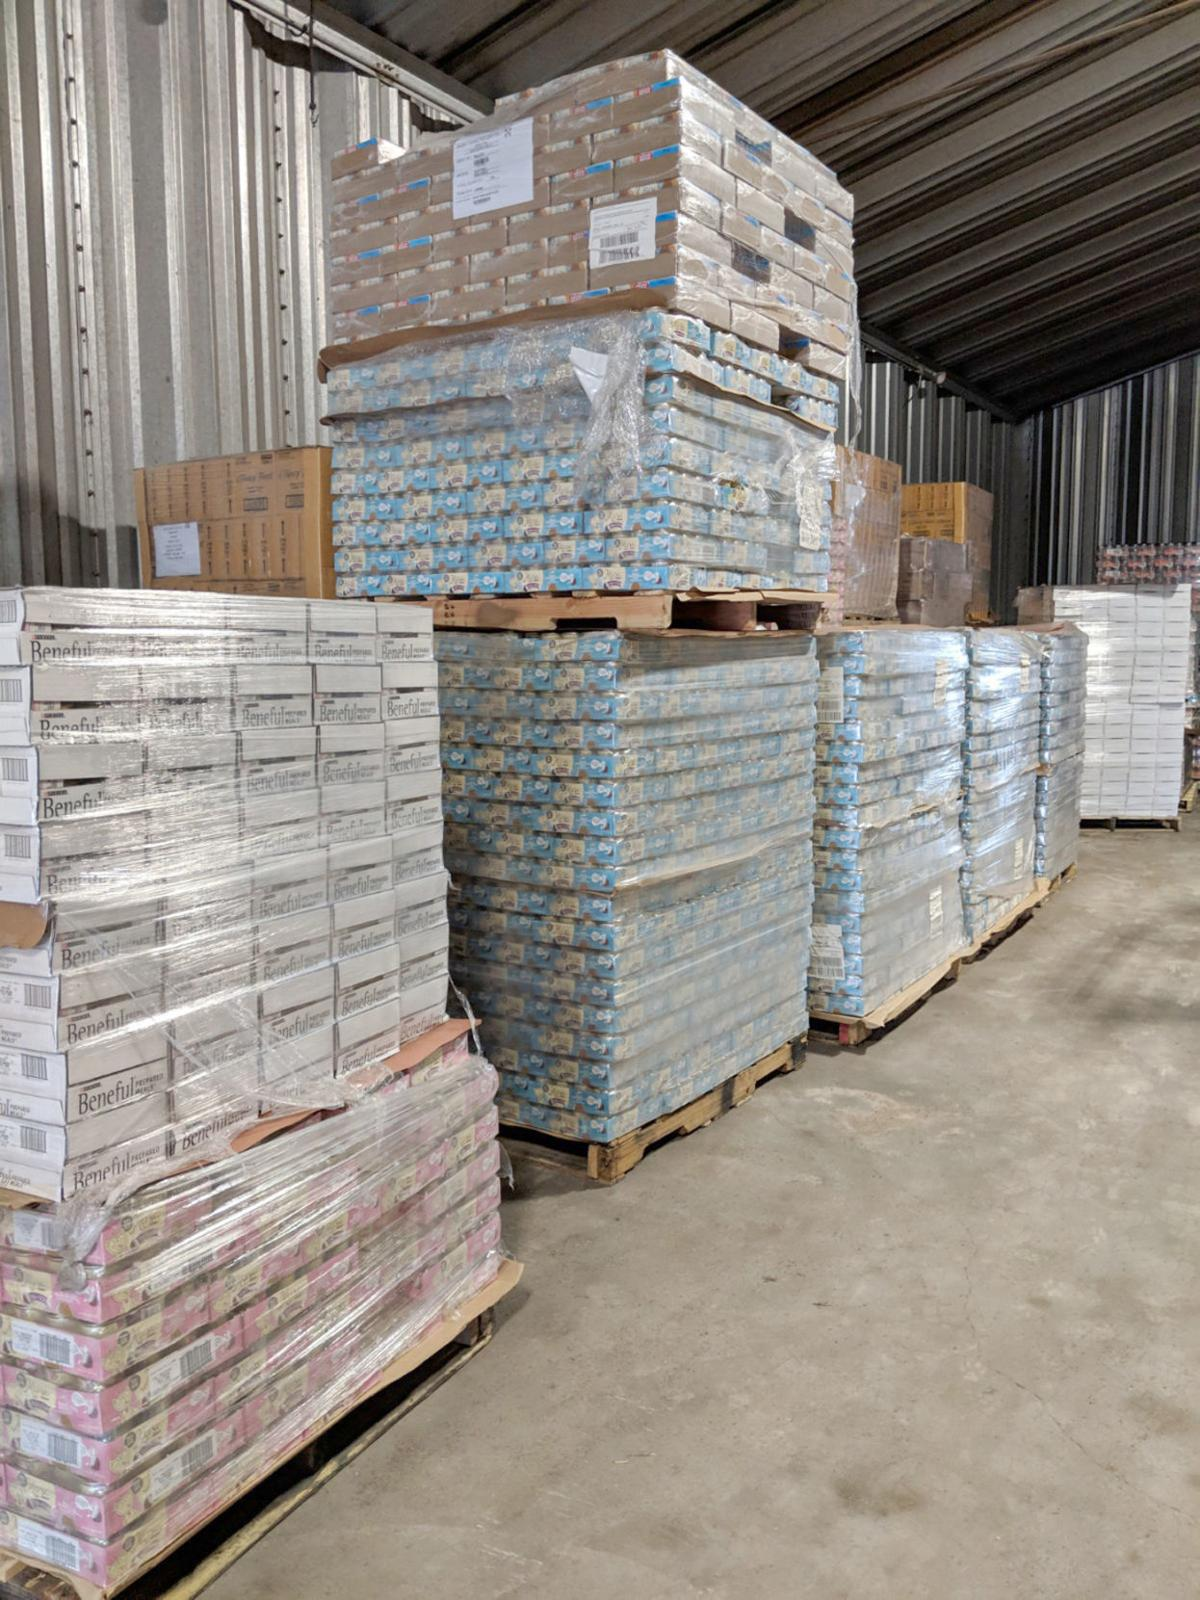 FurEver home pallets of donated supplies